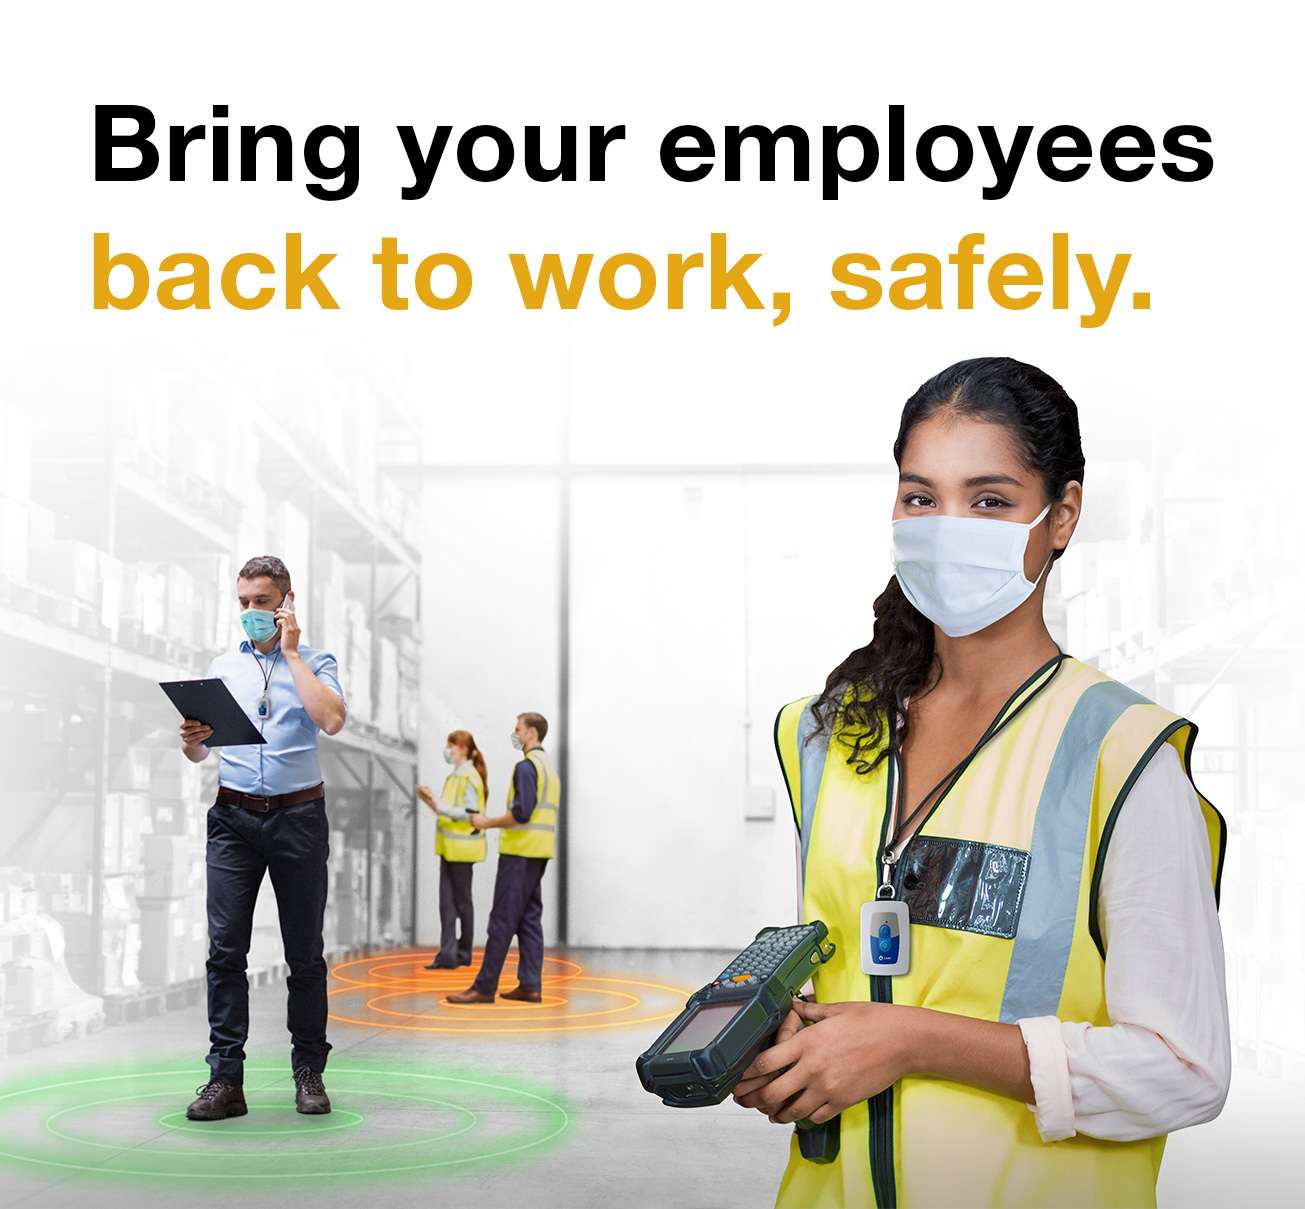 Bring your employees back to work safely